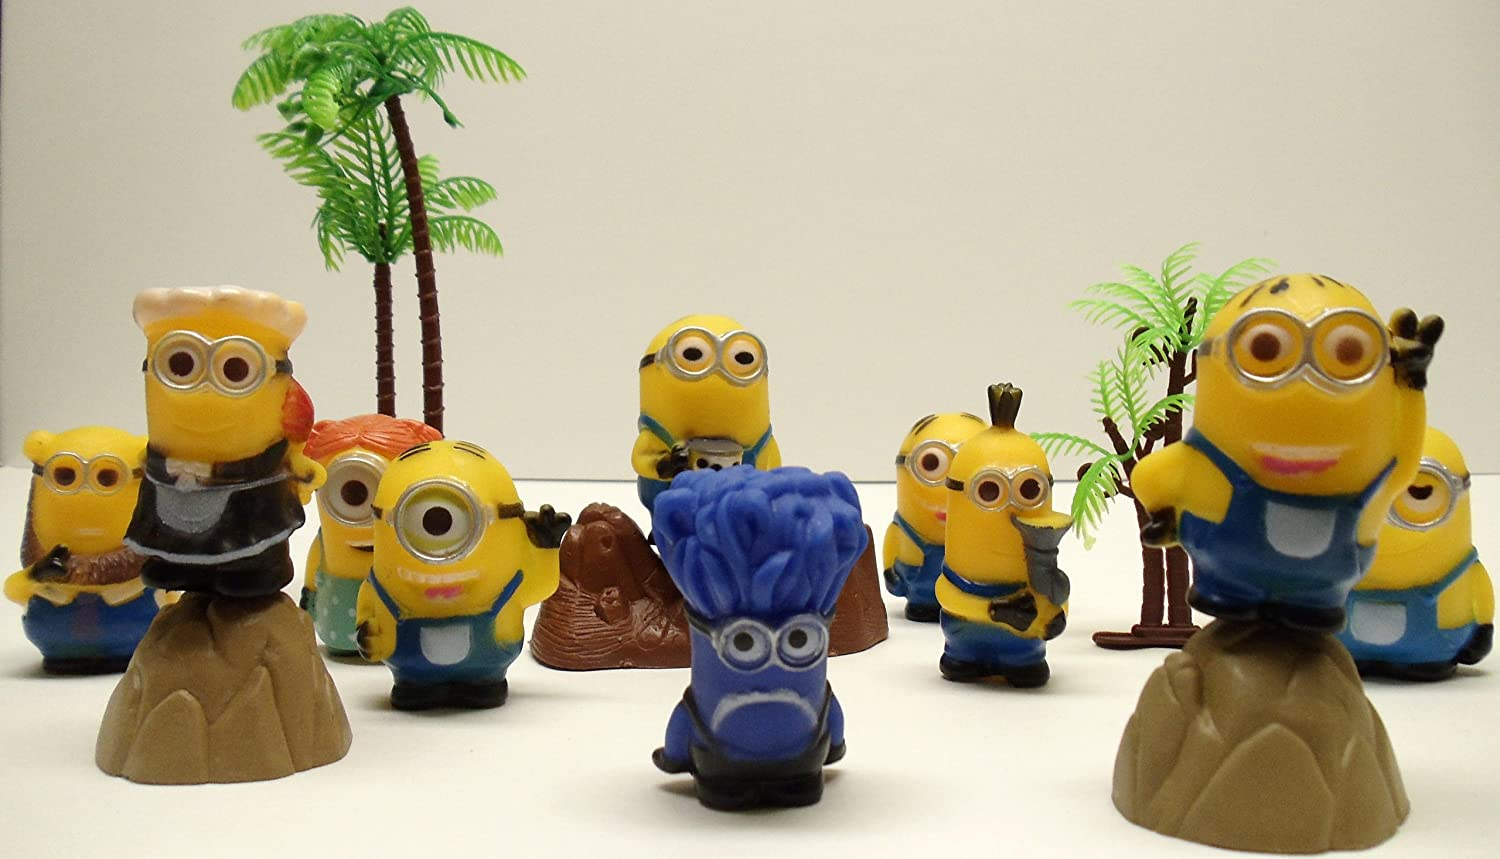 Despicable Me 14 Piece Minion Playset Featuring 2  Minion Figures and Beach Scene Accessories